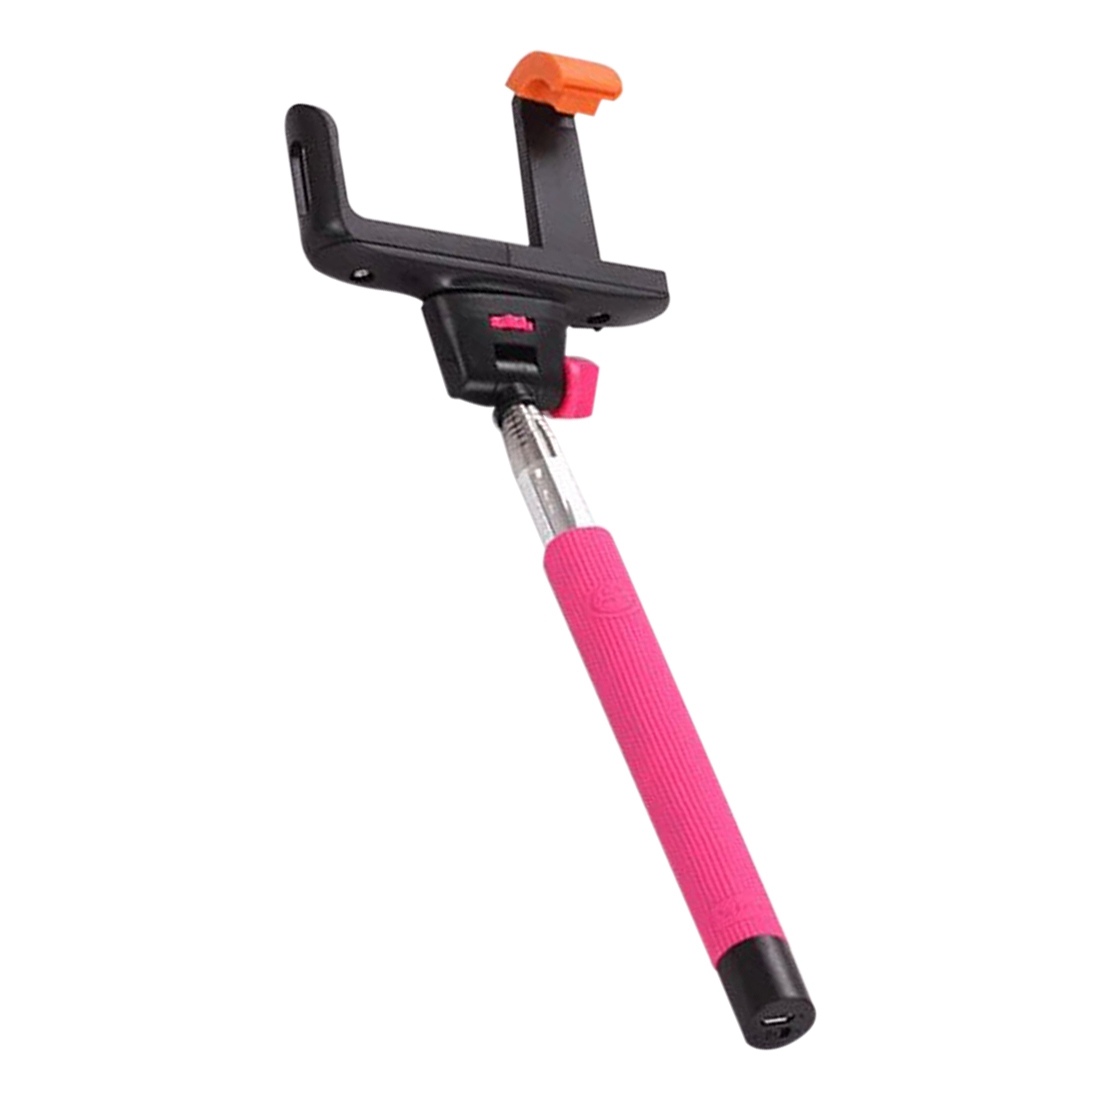 Extendable Handheld Wireless Bluetooth Selfie Stick For Android Phone rose red